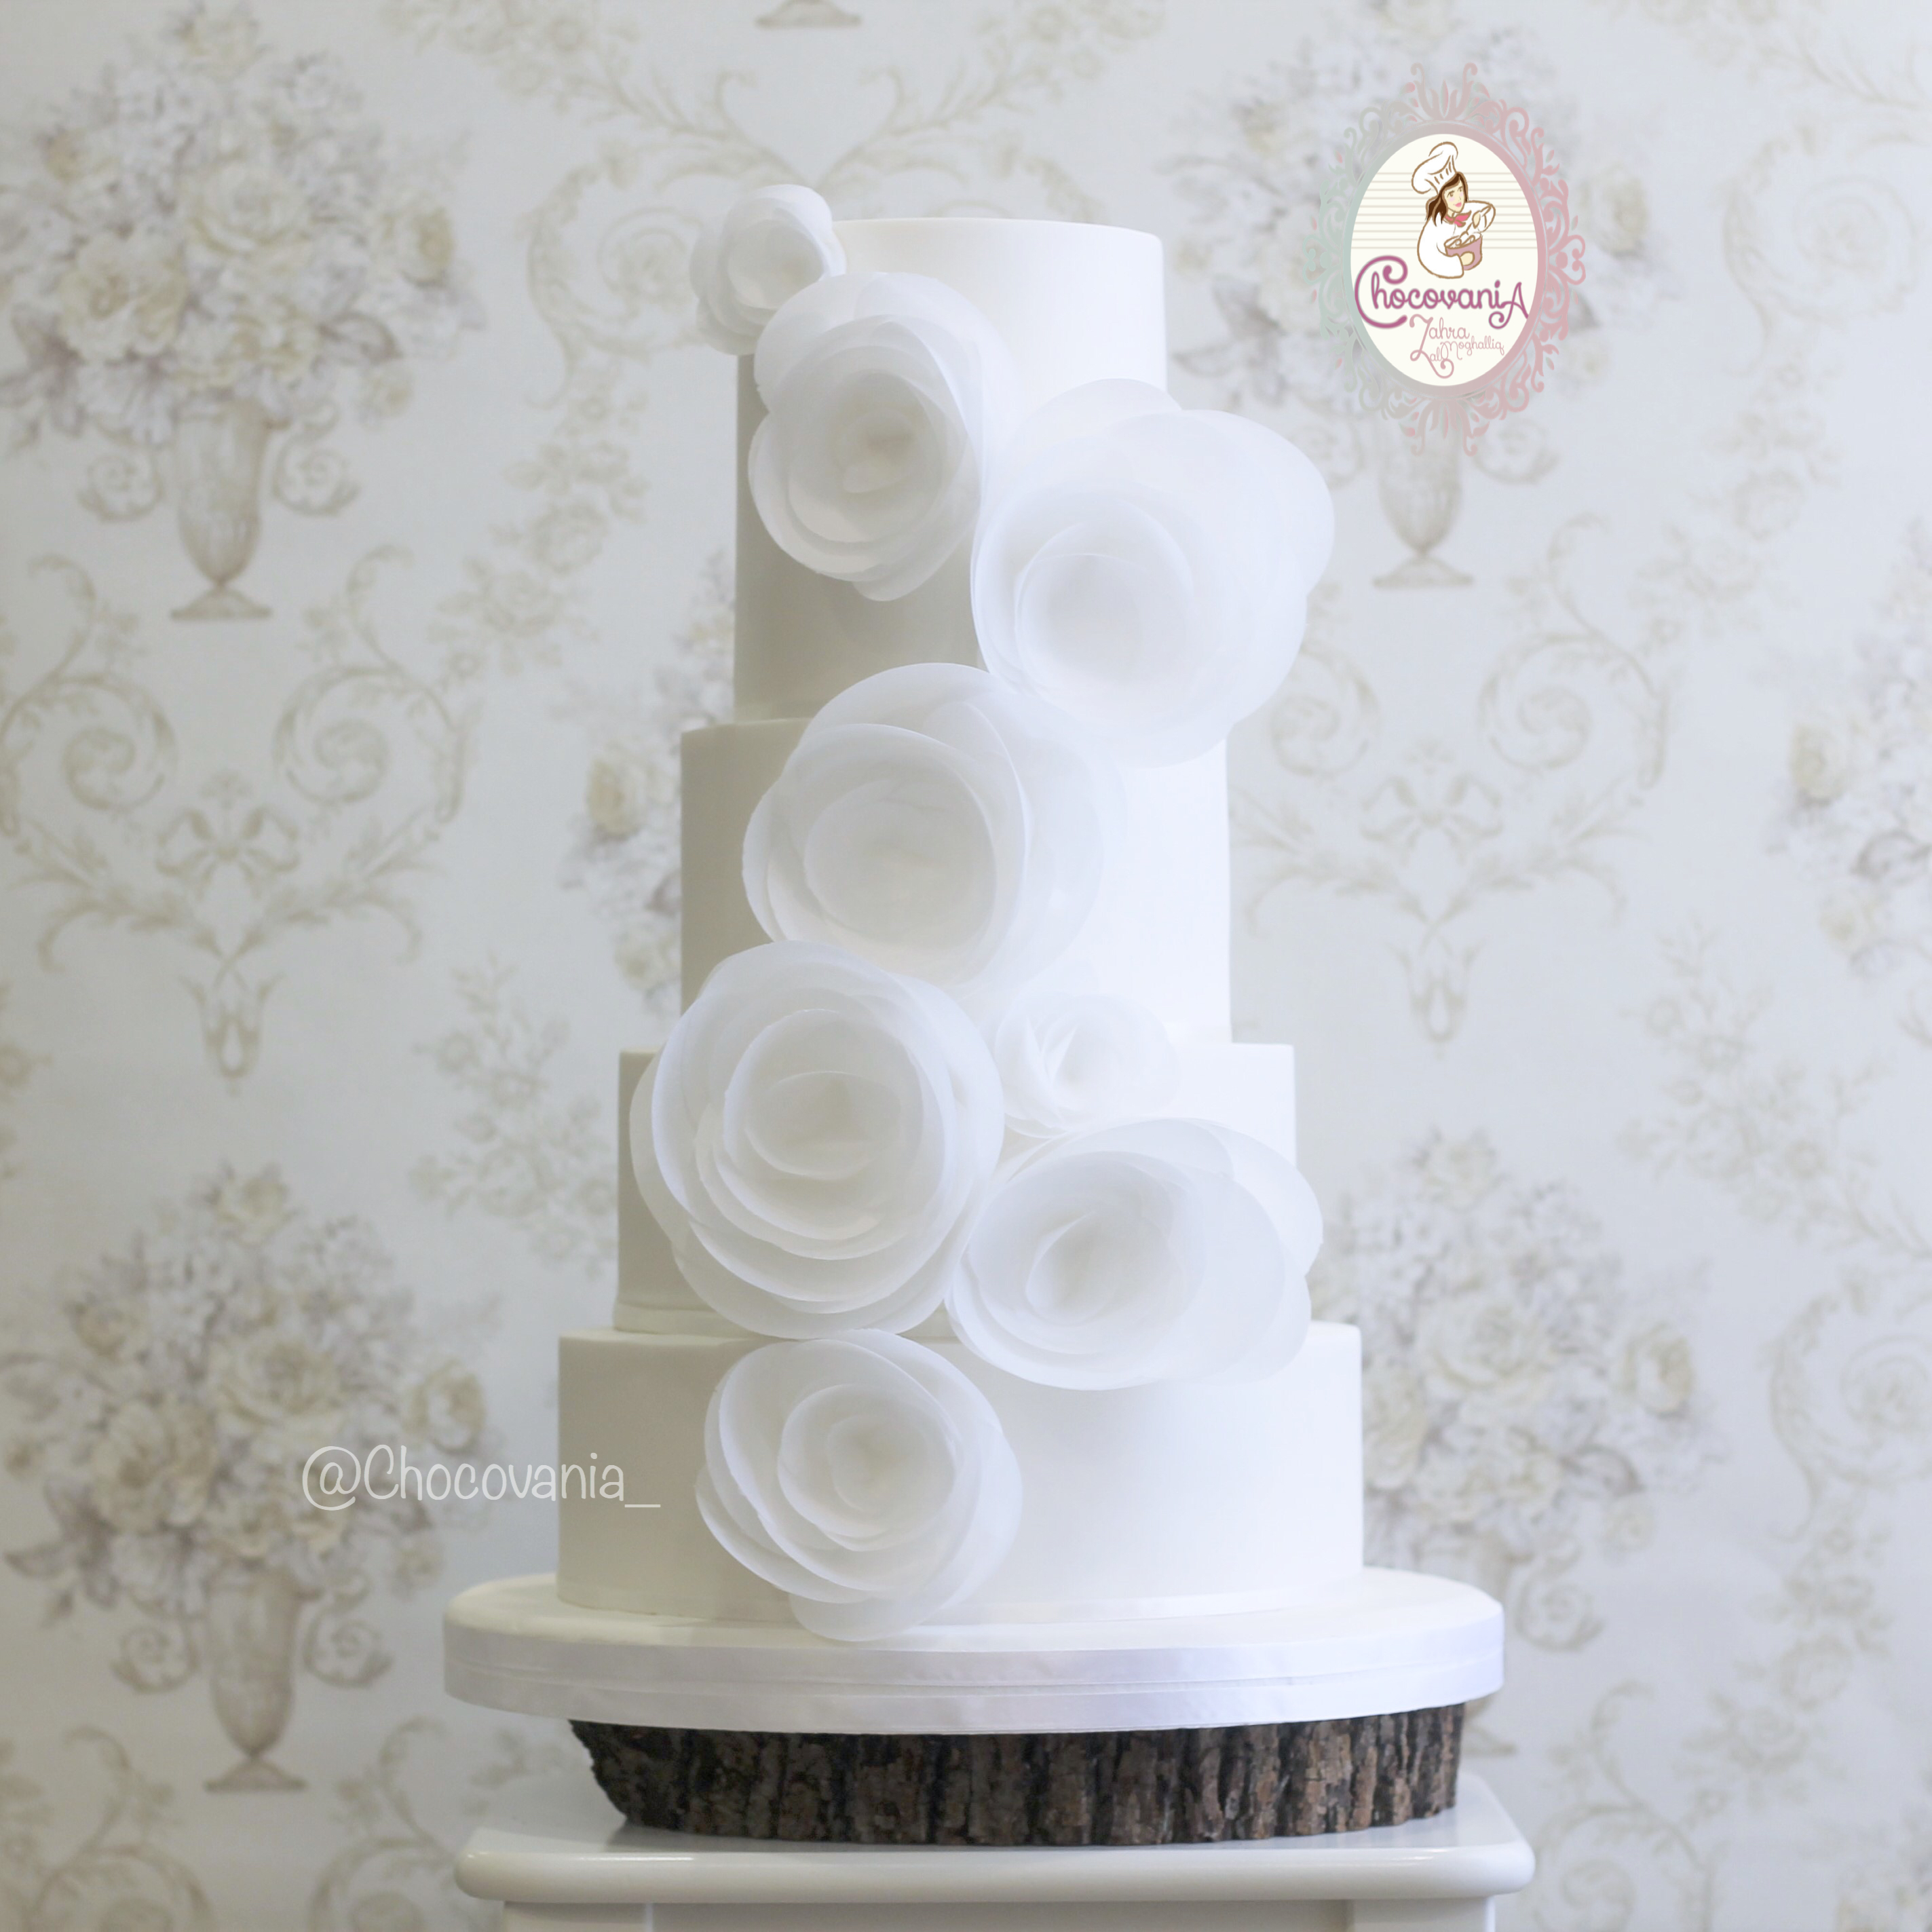 White wedding cake with large wafer flowers